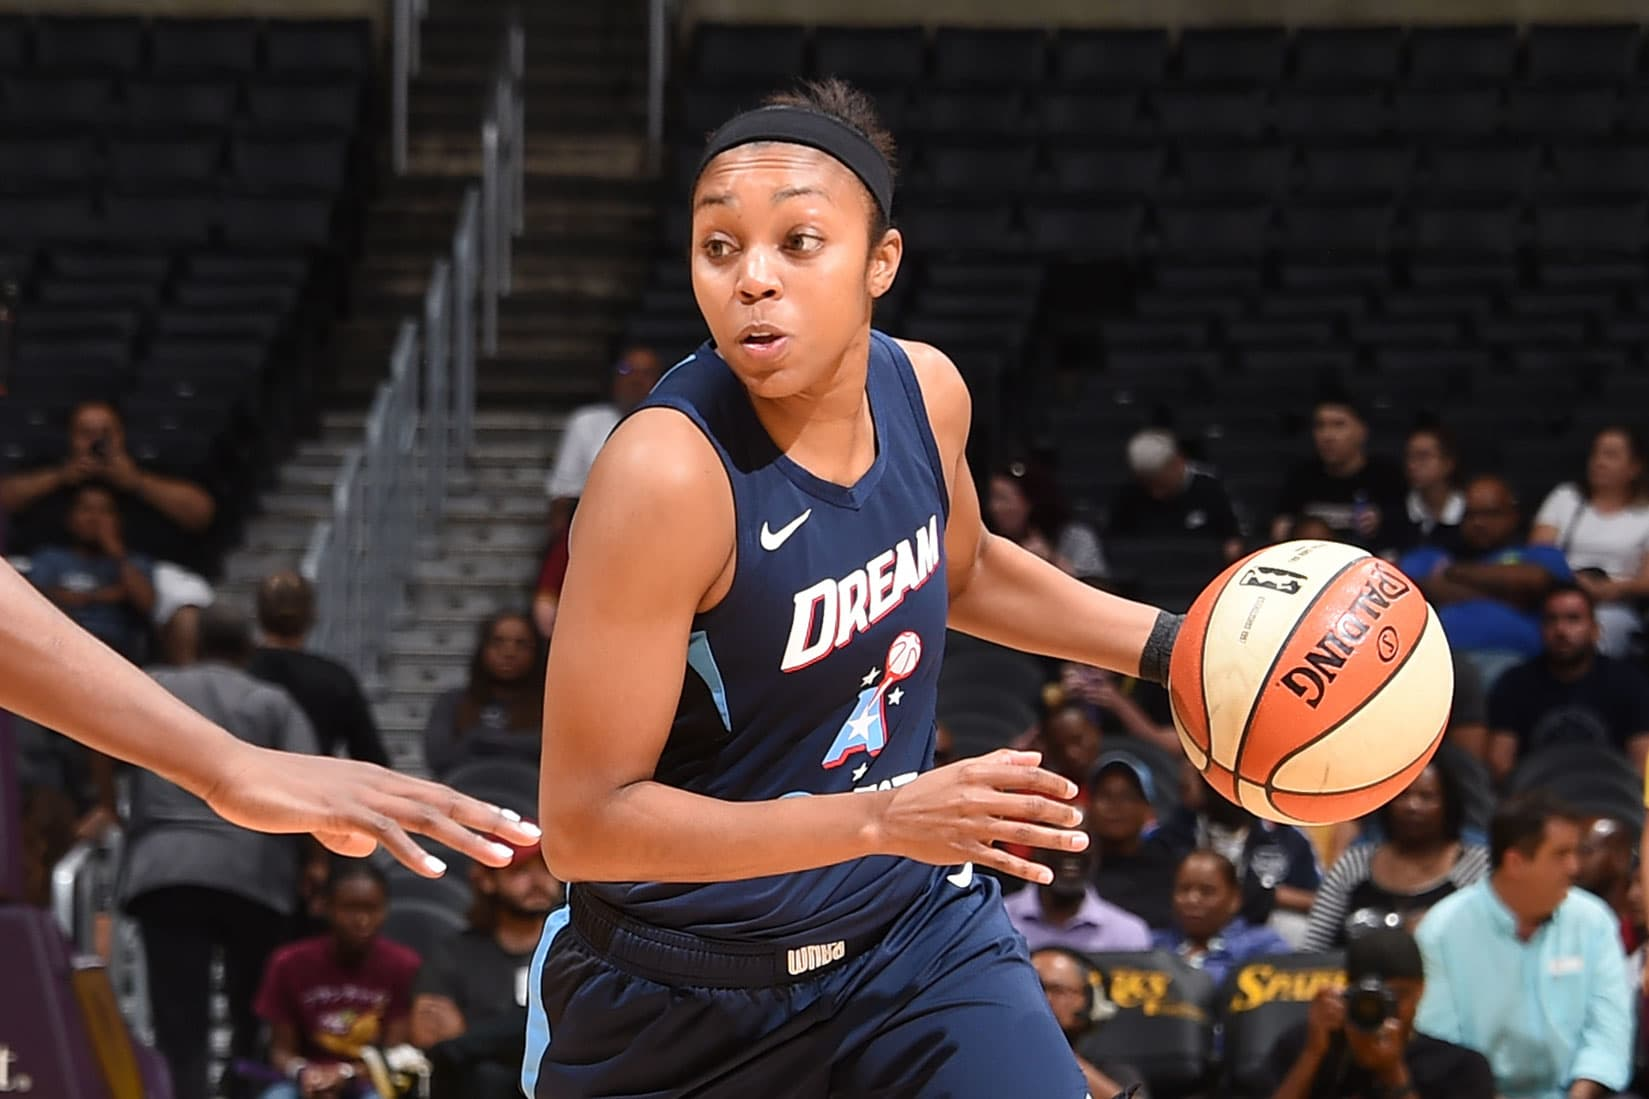 Atlanta Dream offered to Larry Gottesdiener following Kelly Loeffler controversy